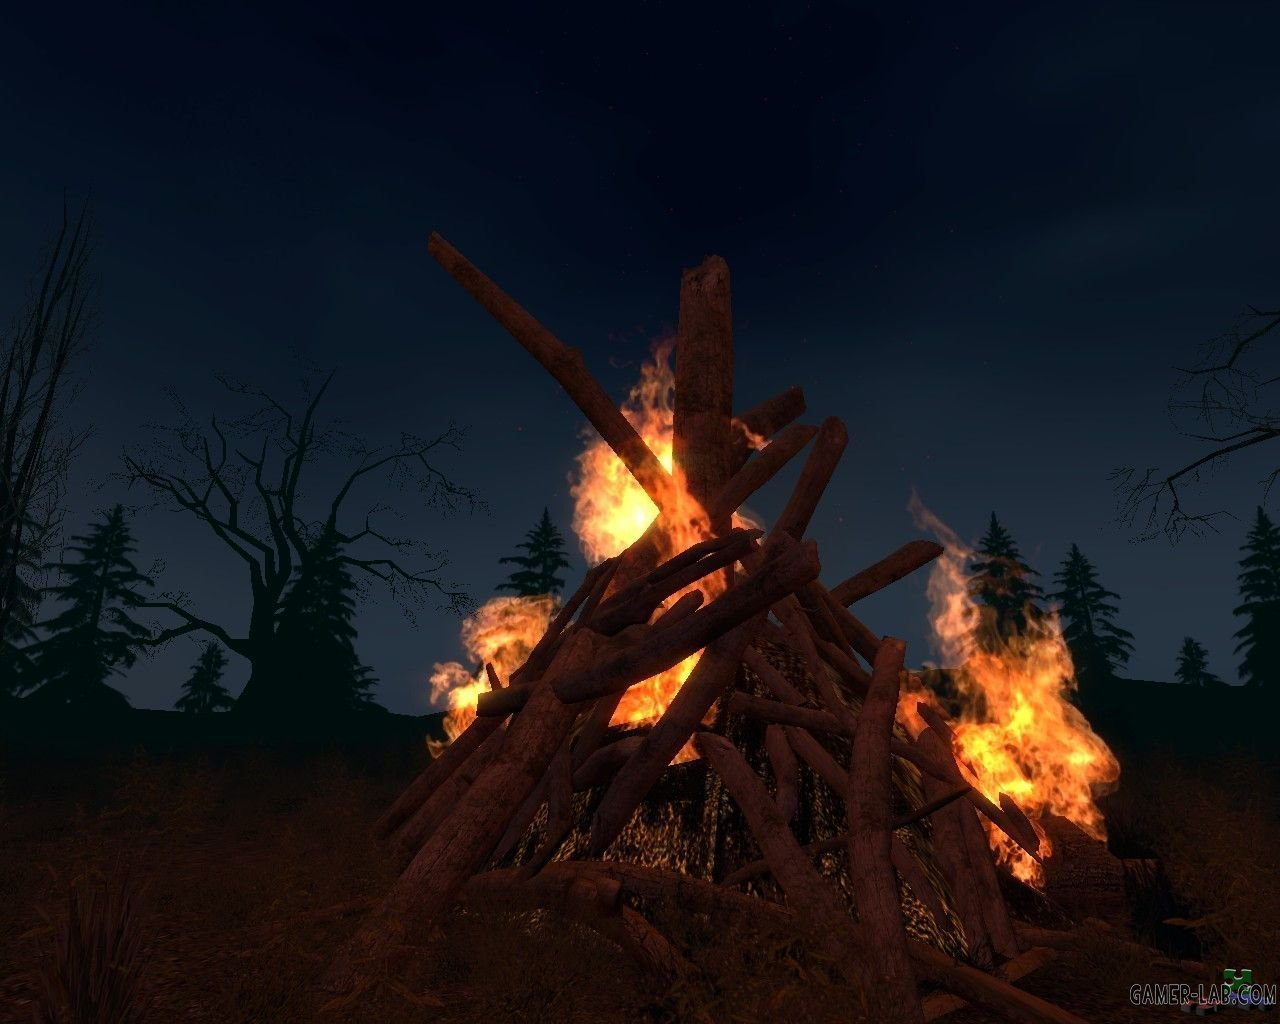 dod_bonfire_night_b1